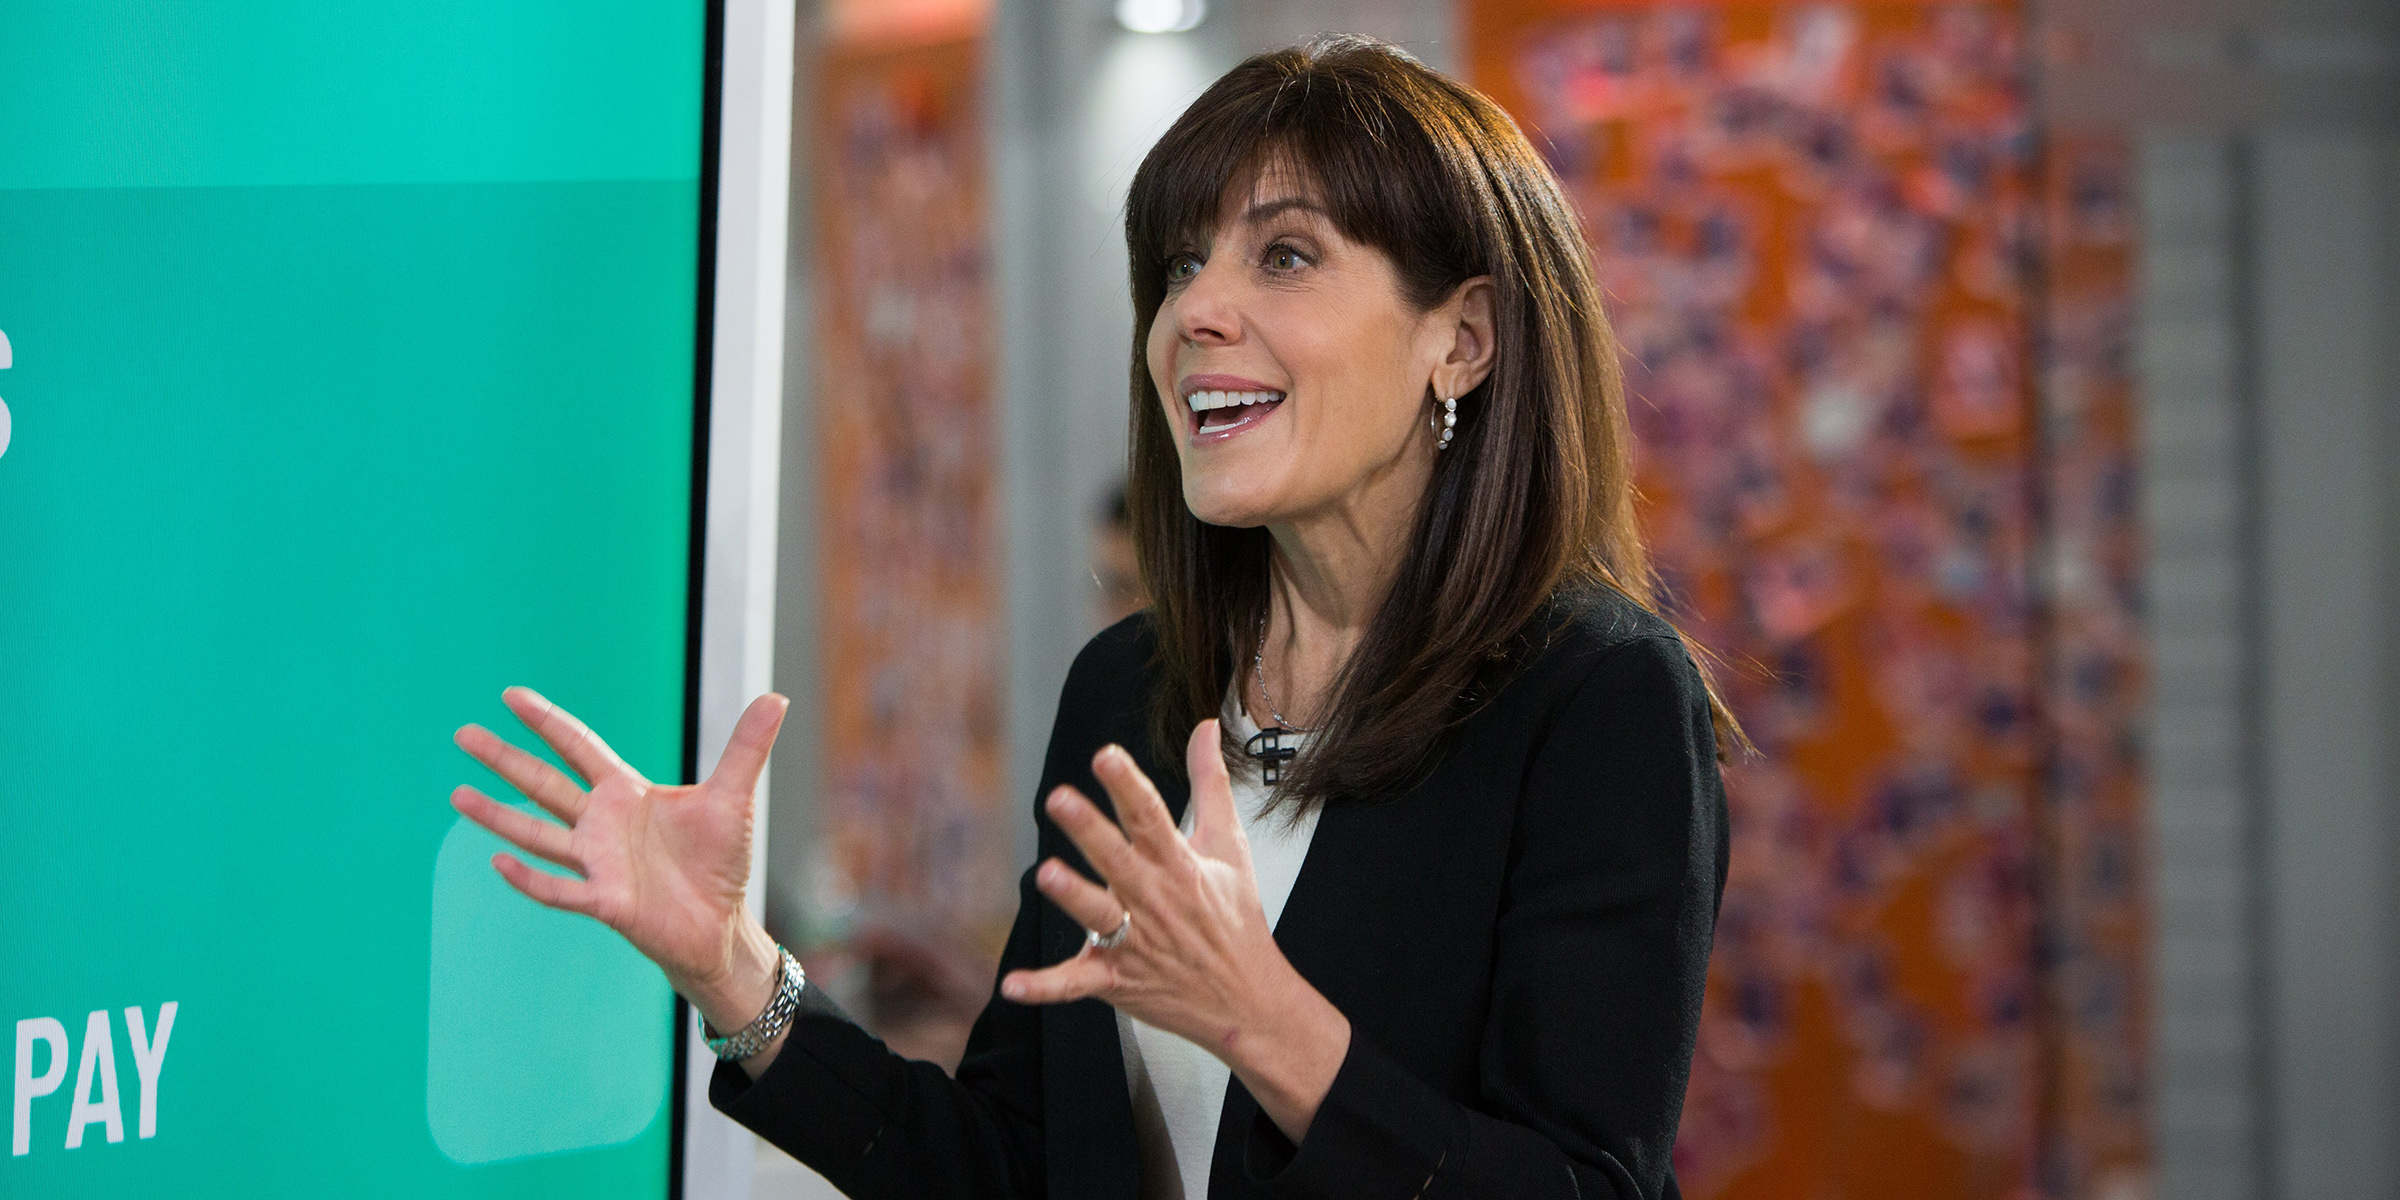 Ask expert Jean Chatzky your biggest financial questions here